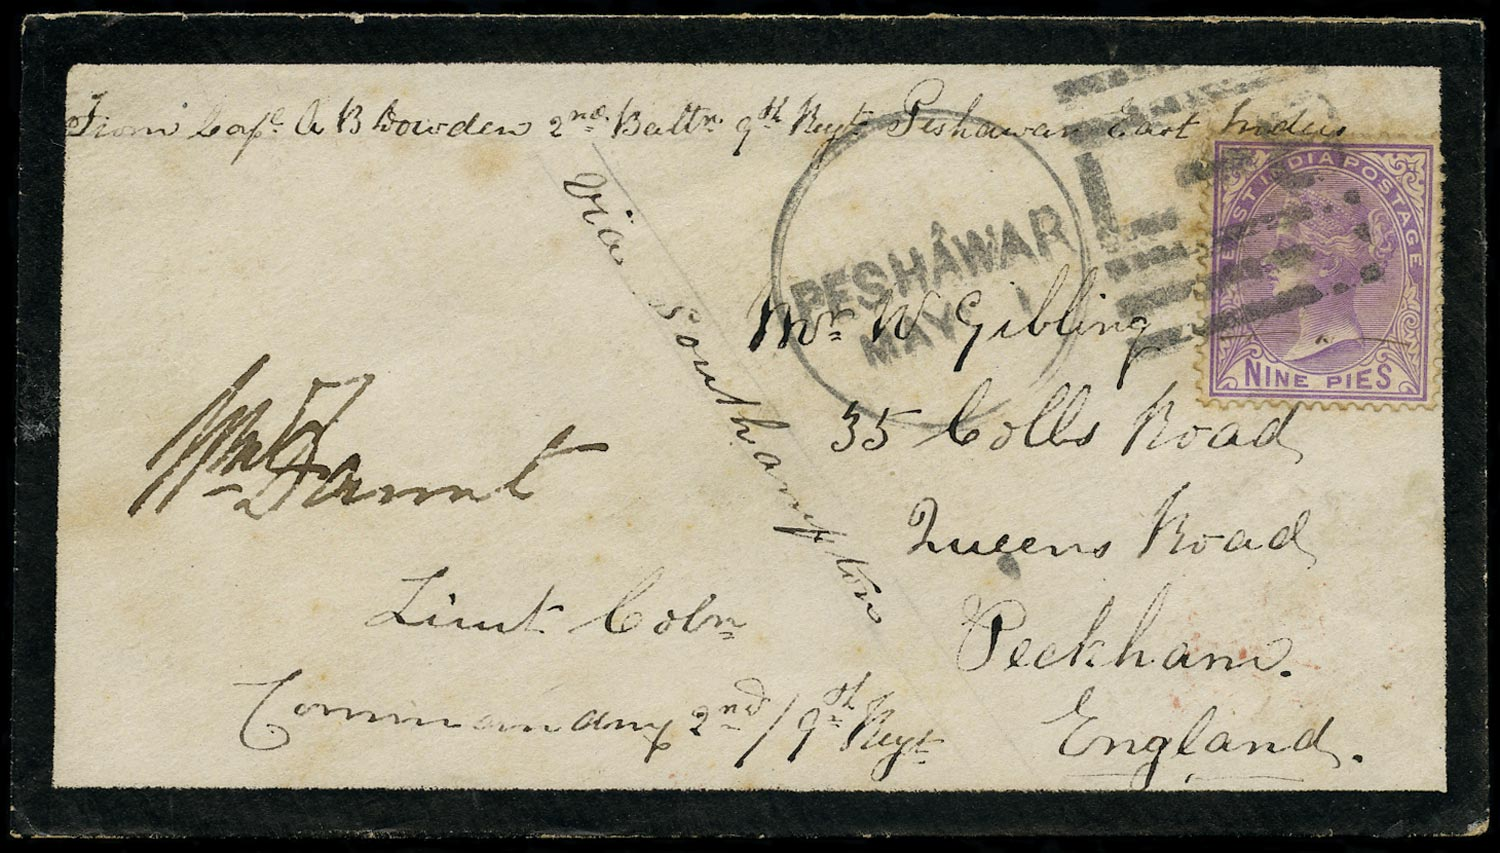 INDIA 1878  SG77 Cover from Peshawar to England franked at 9p concessionary rate